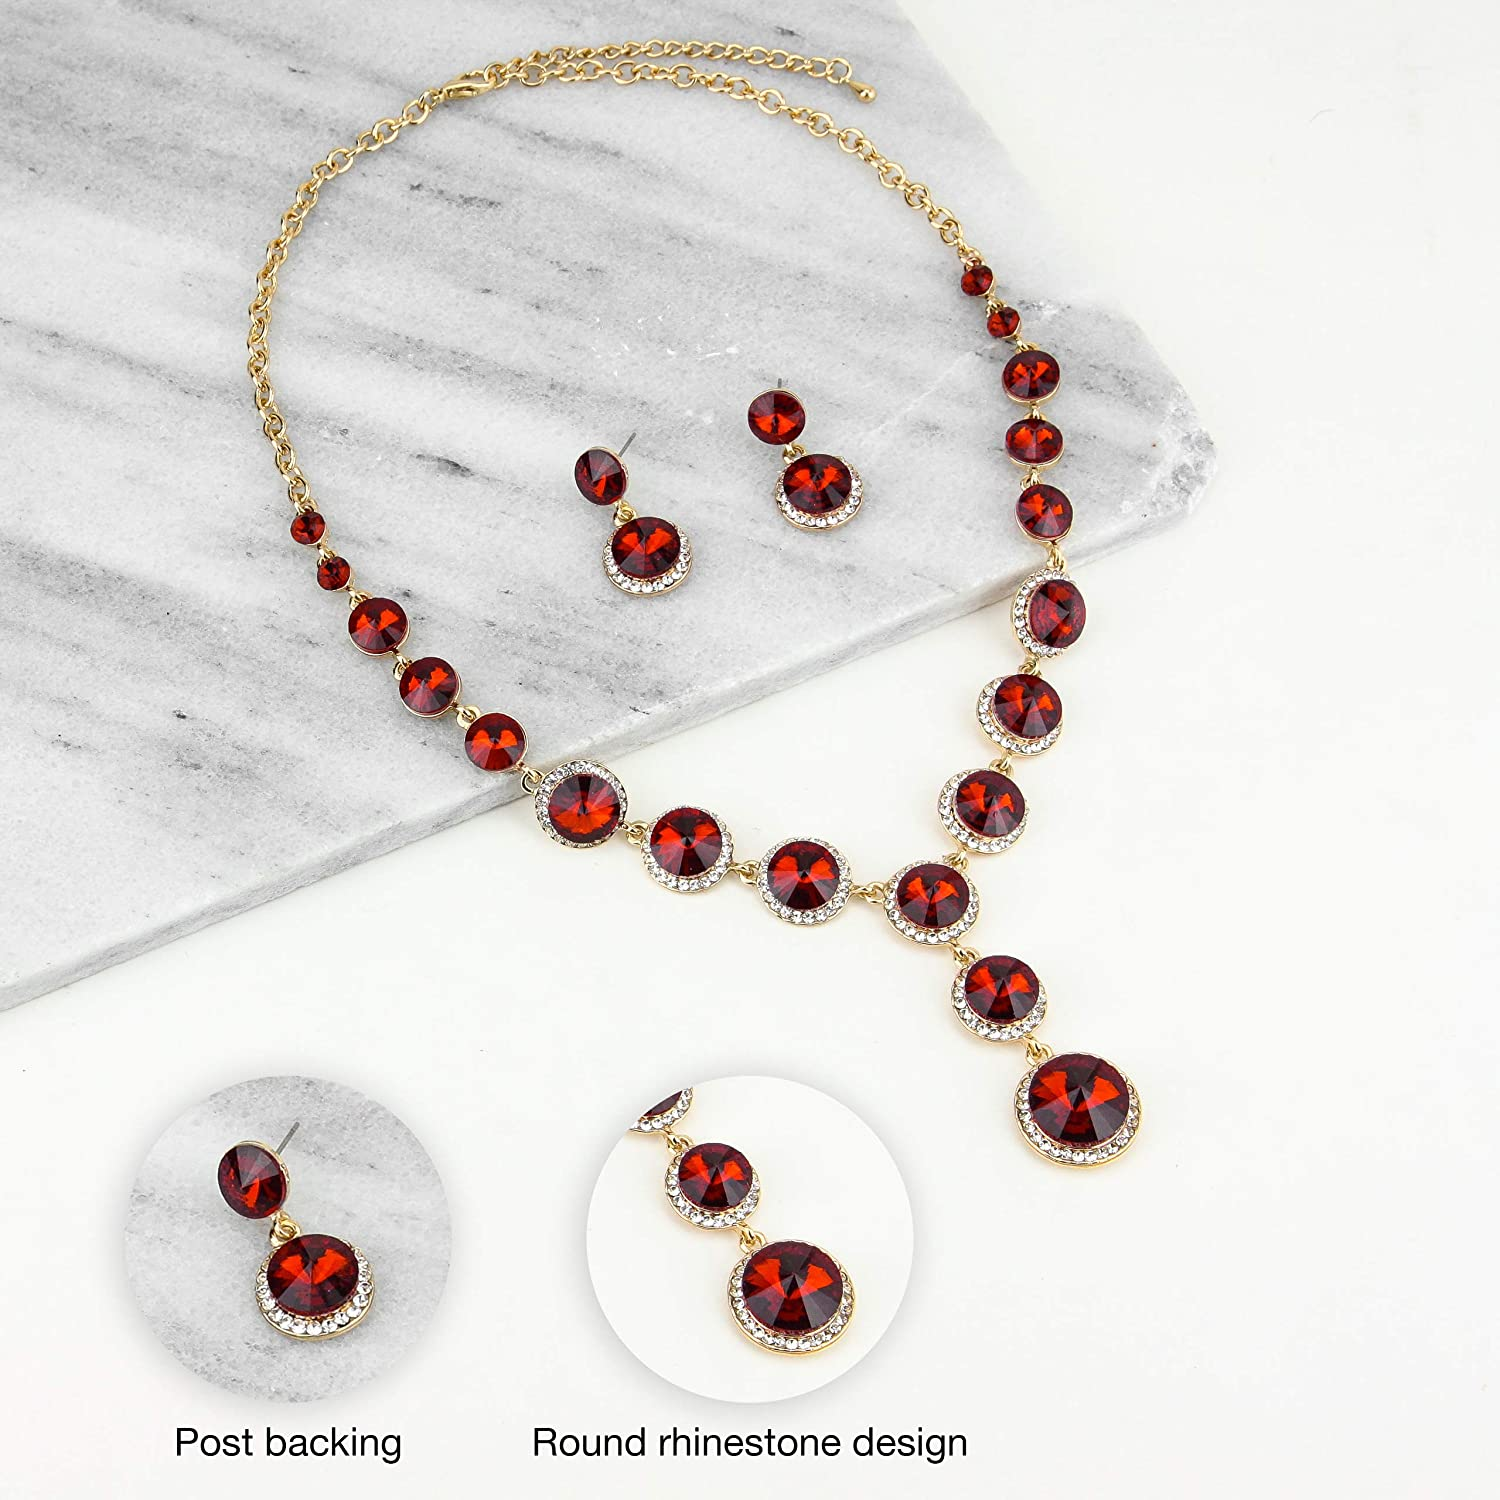 SP Sophia Collection Elegant Women's Round Austrian Crystal Rhinestone Drop Necklace and Stud Post Dangle Earrings Jewelry Set